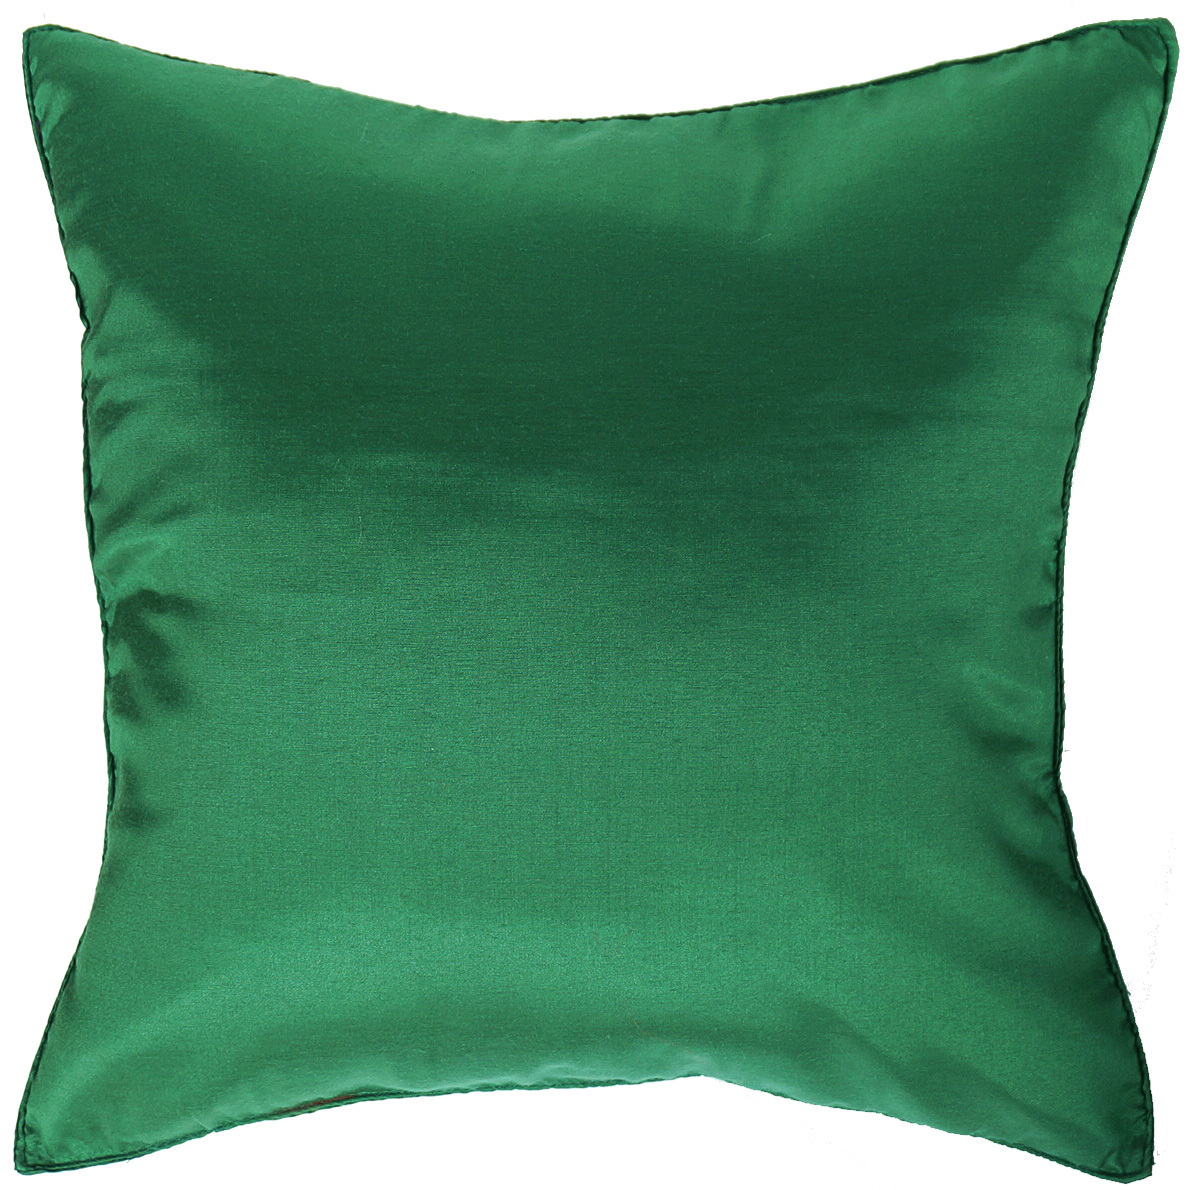 Large Throw Pillows Couch : 1x SILK LARGE DECORATIVE THROW PILLOW COVER FOR COUCH SOFA BED SOLID COLOR 20x20 - Pillows